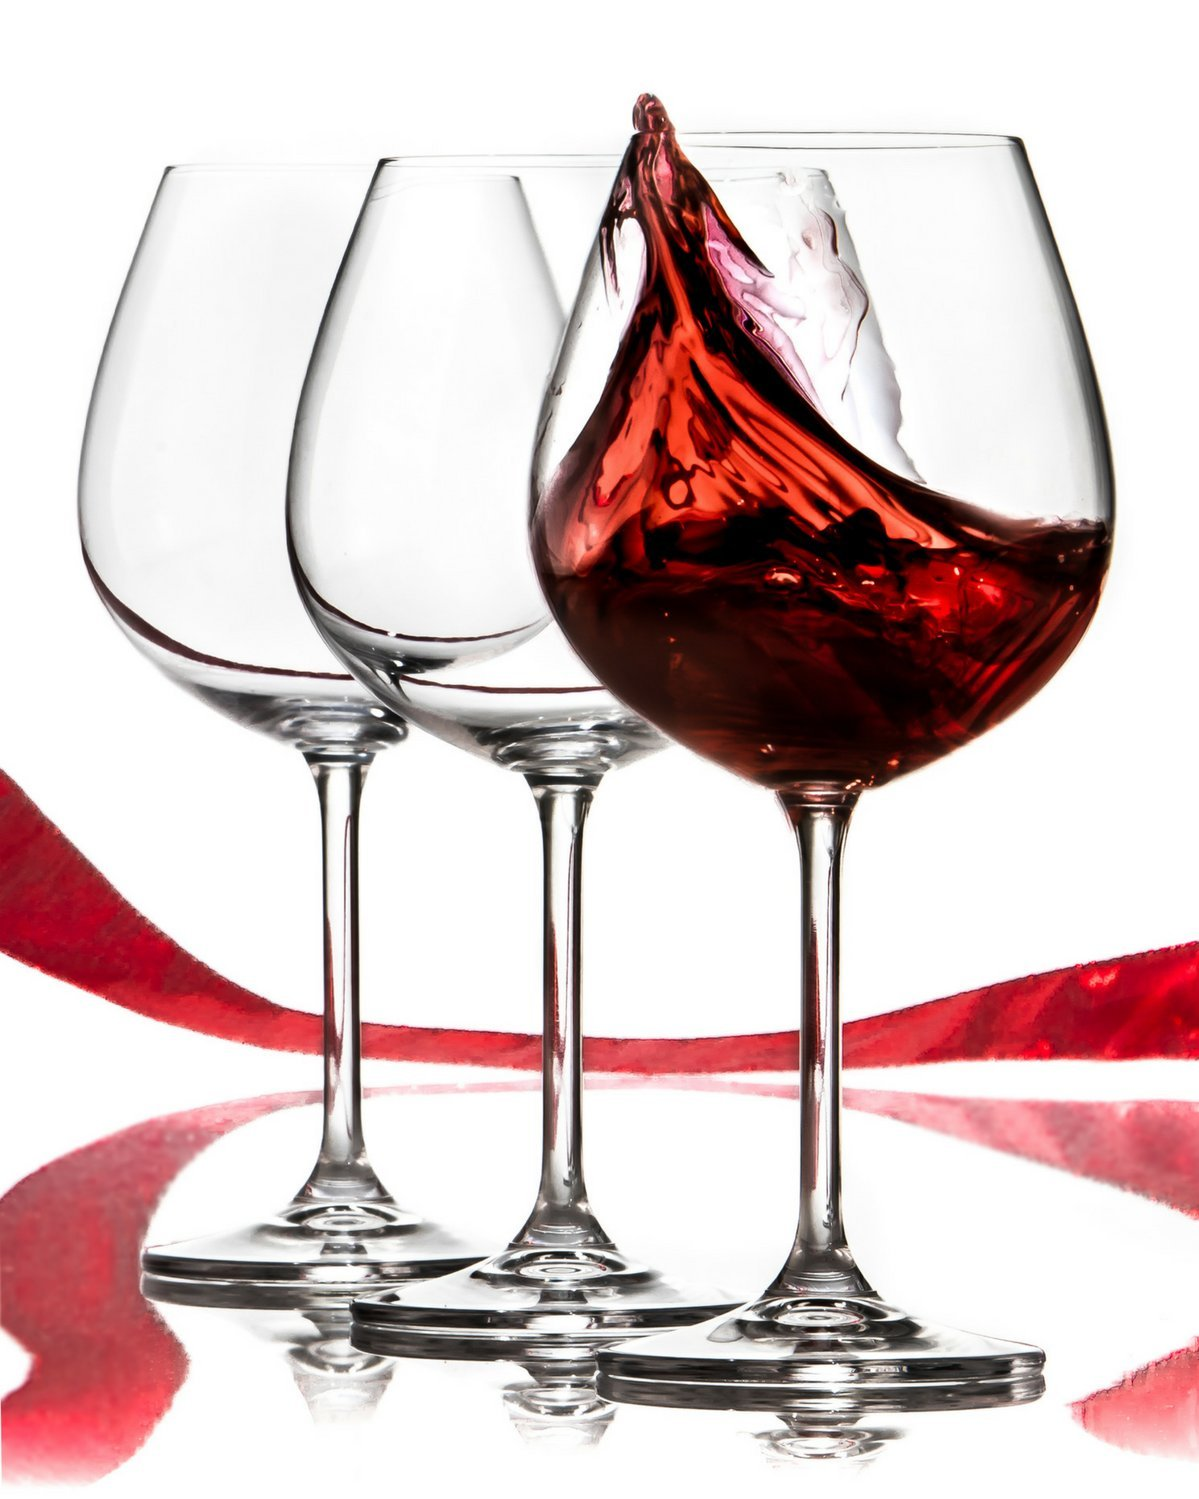 Amazon.com: Red Wine Glasses Set - Lead Free Titanium Crystal Glass, 22 oz.  Large Bowl, Long Stemmed Glassware For Great Tasting Wine - Best For  Birthday, ...